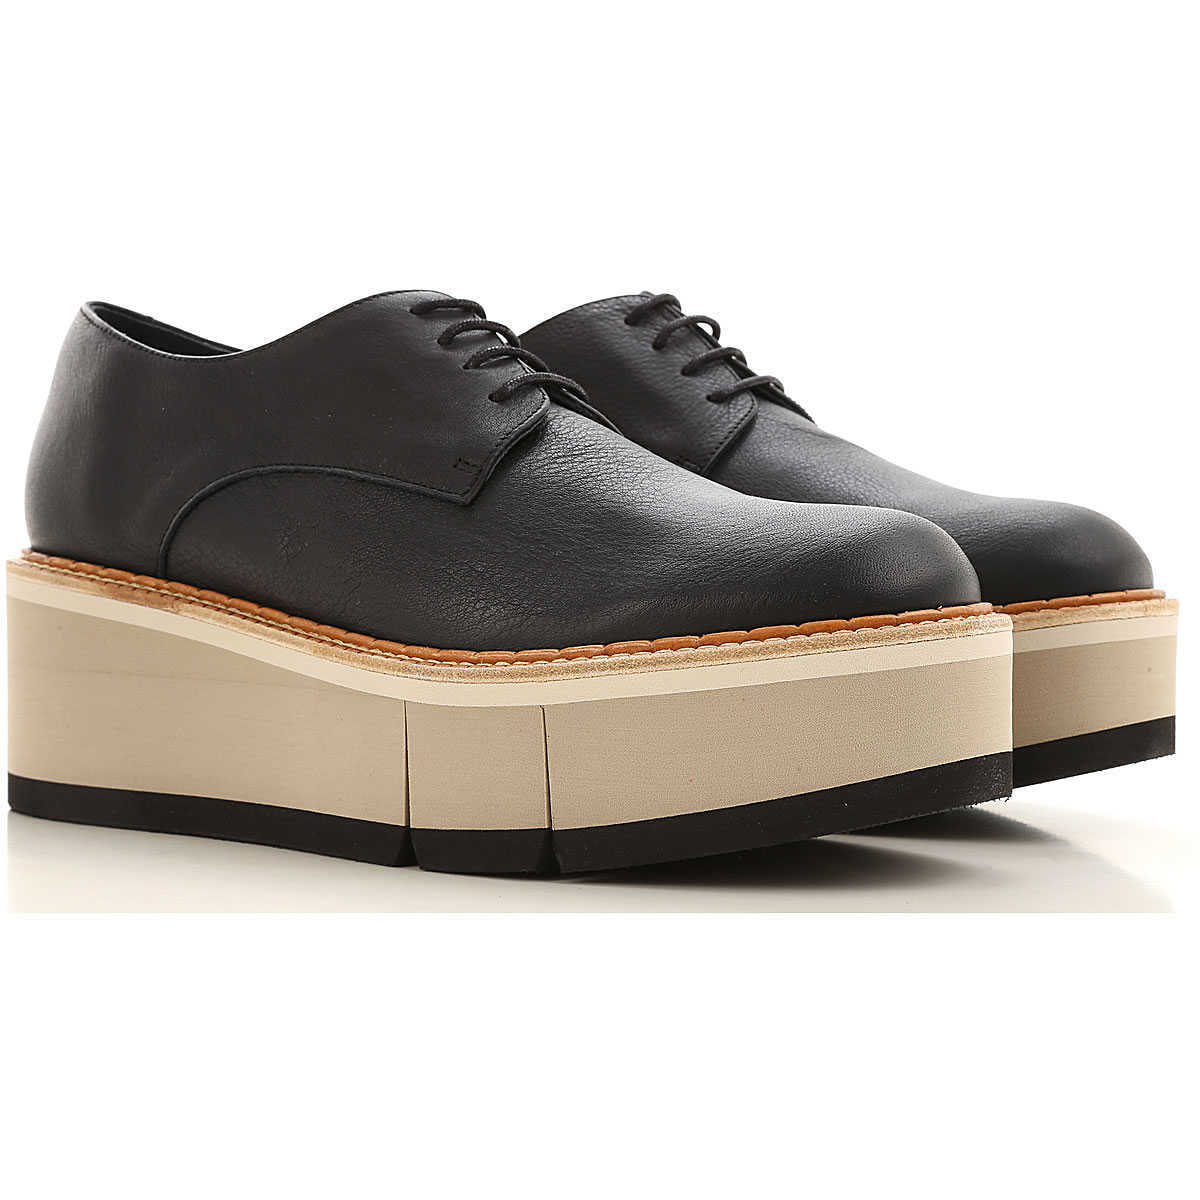 Paloma Barcelo Lace Up Shoes for Men Oxfords 4.5 5.5 6.5 7.5 Derbies and Brogues UK - GOOFASH